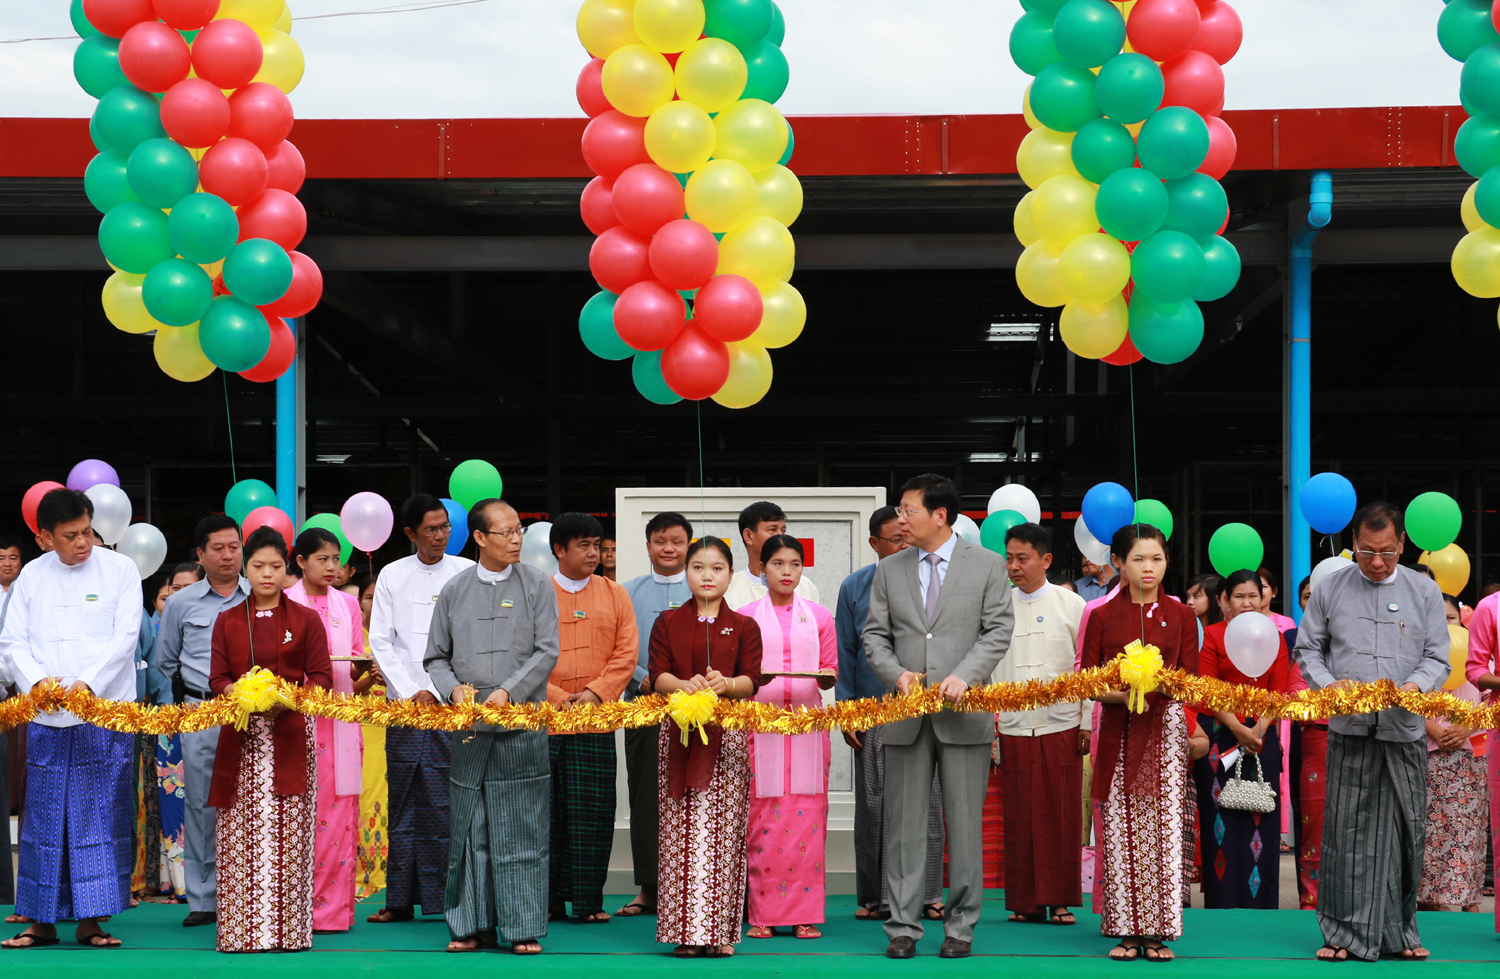 Chinese Ambassador to Myanmar, Hong Liang (third from right), and Chairman of Nay Pyi Taw Council, Dr. Myo Aung (third from left), cut the ribbon at the handover ceremony of the rebuilt Thapyaygone Market on May 27, 2017. [Photo: China Plus/Tu Yun]